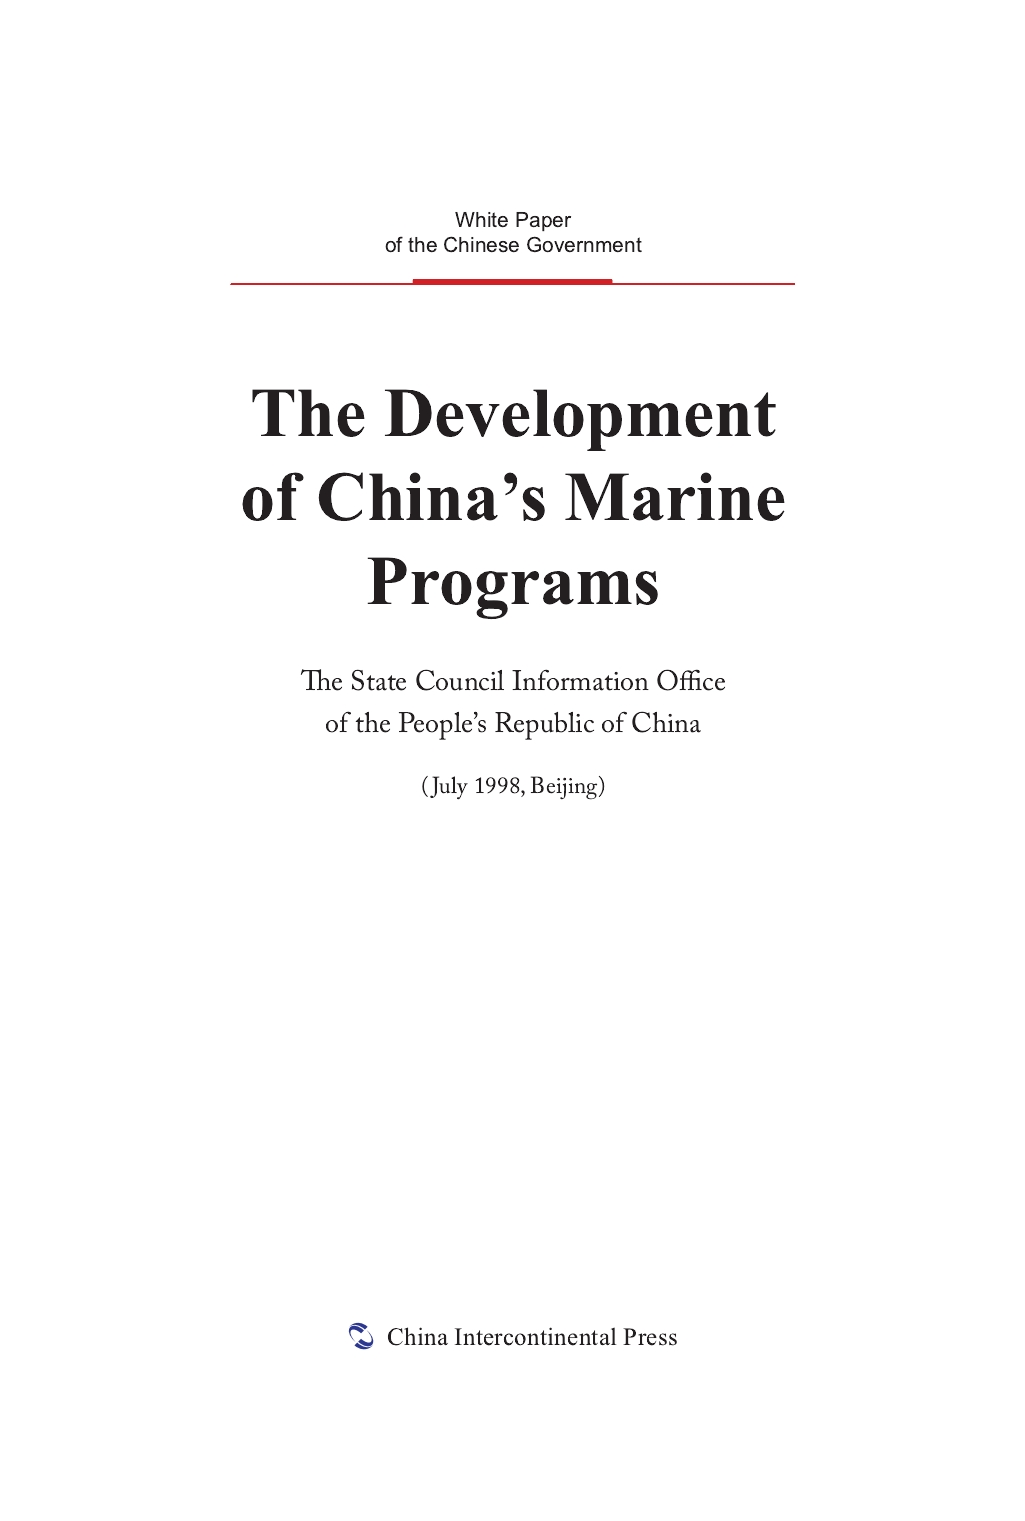 The Development of China's Marine Programs